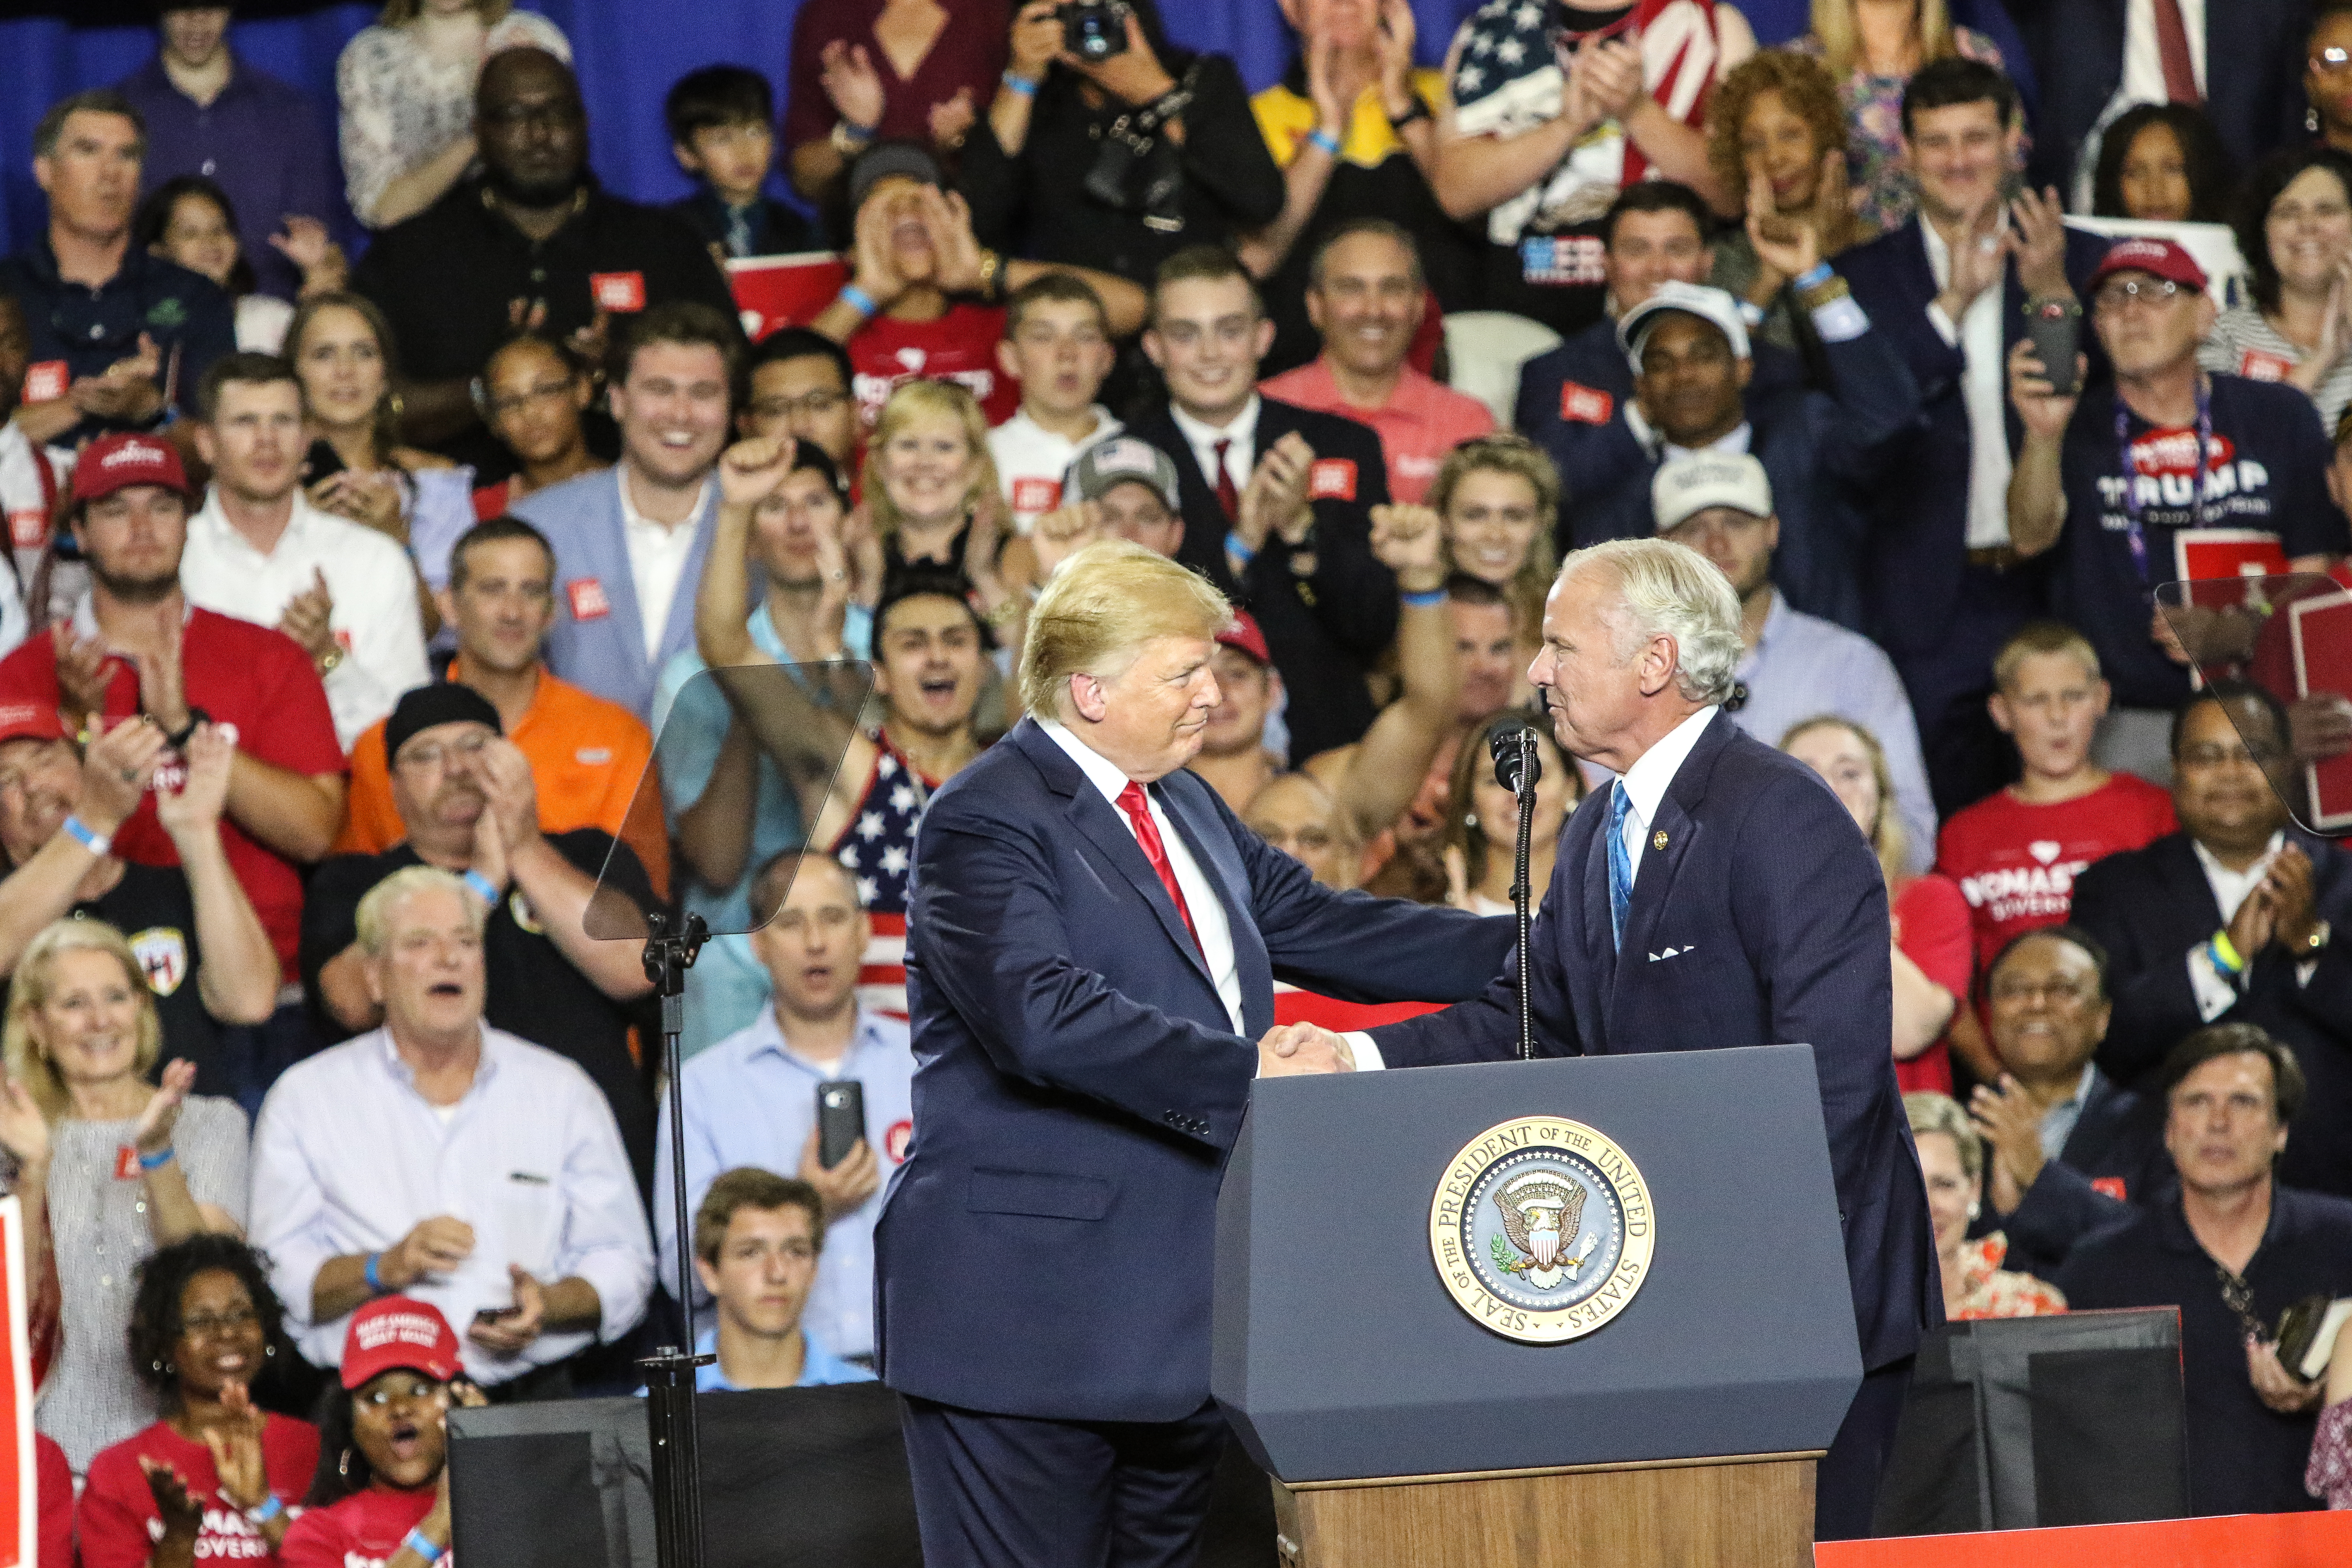 Donald Trump stumps for Henry McMaster -1776